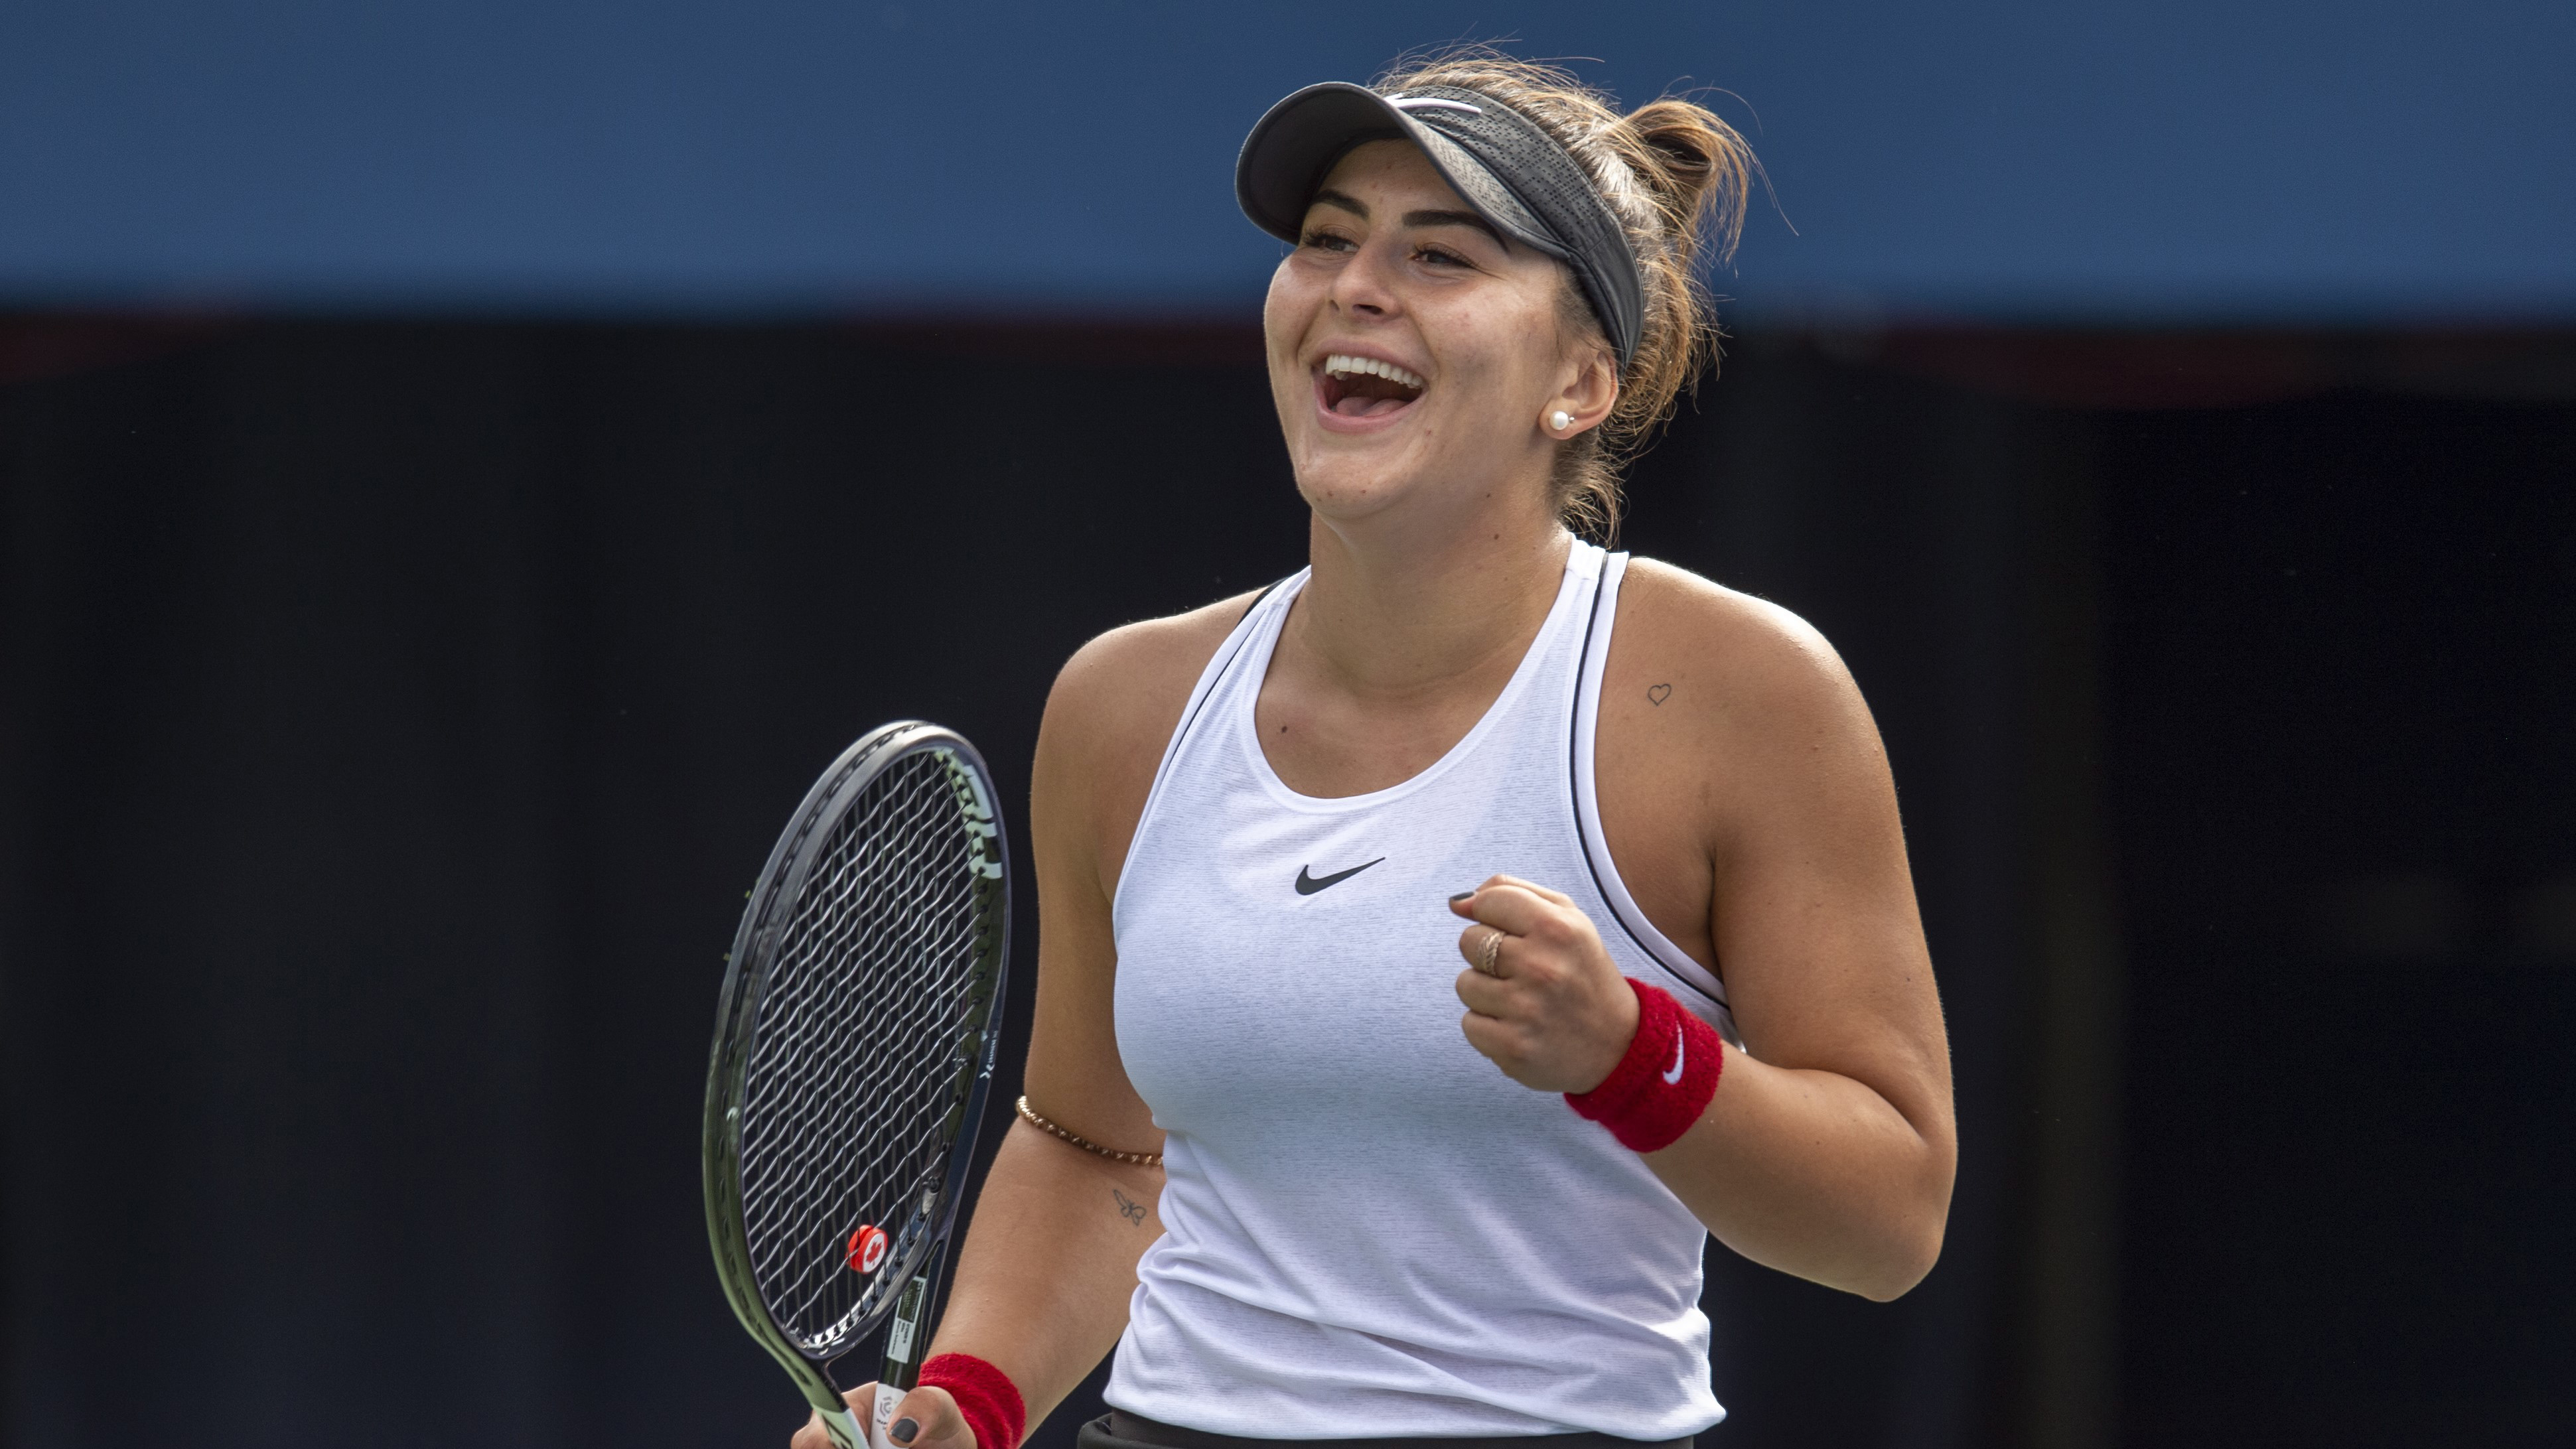 Bianca Andreescu overcomes injury to advance to Rogers Cup ...